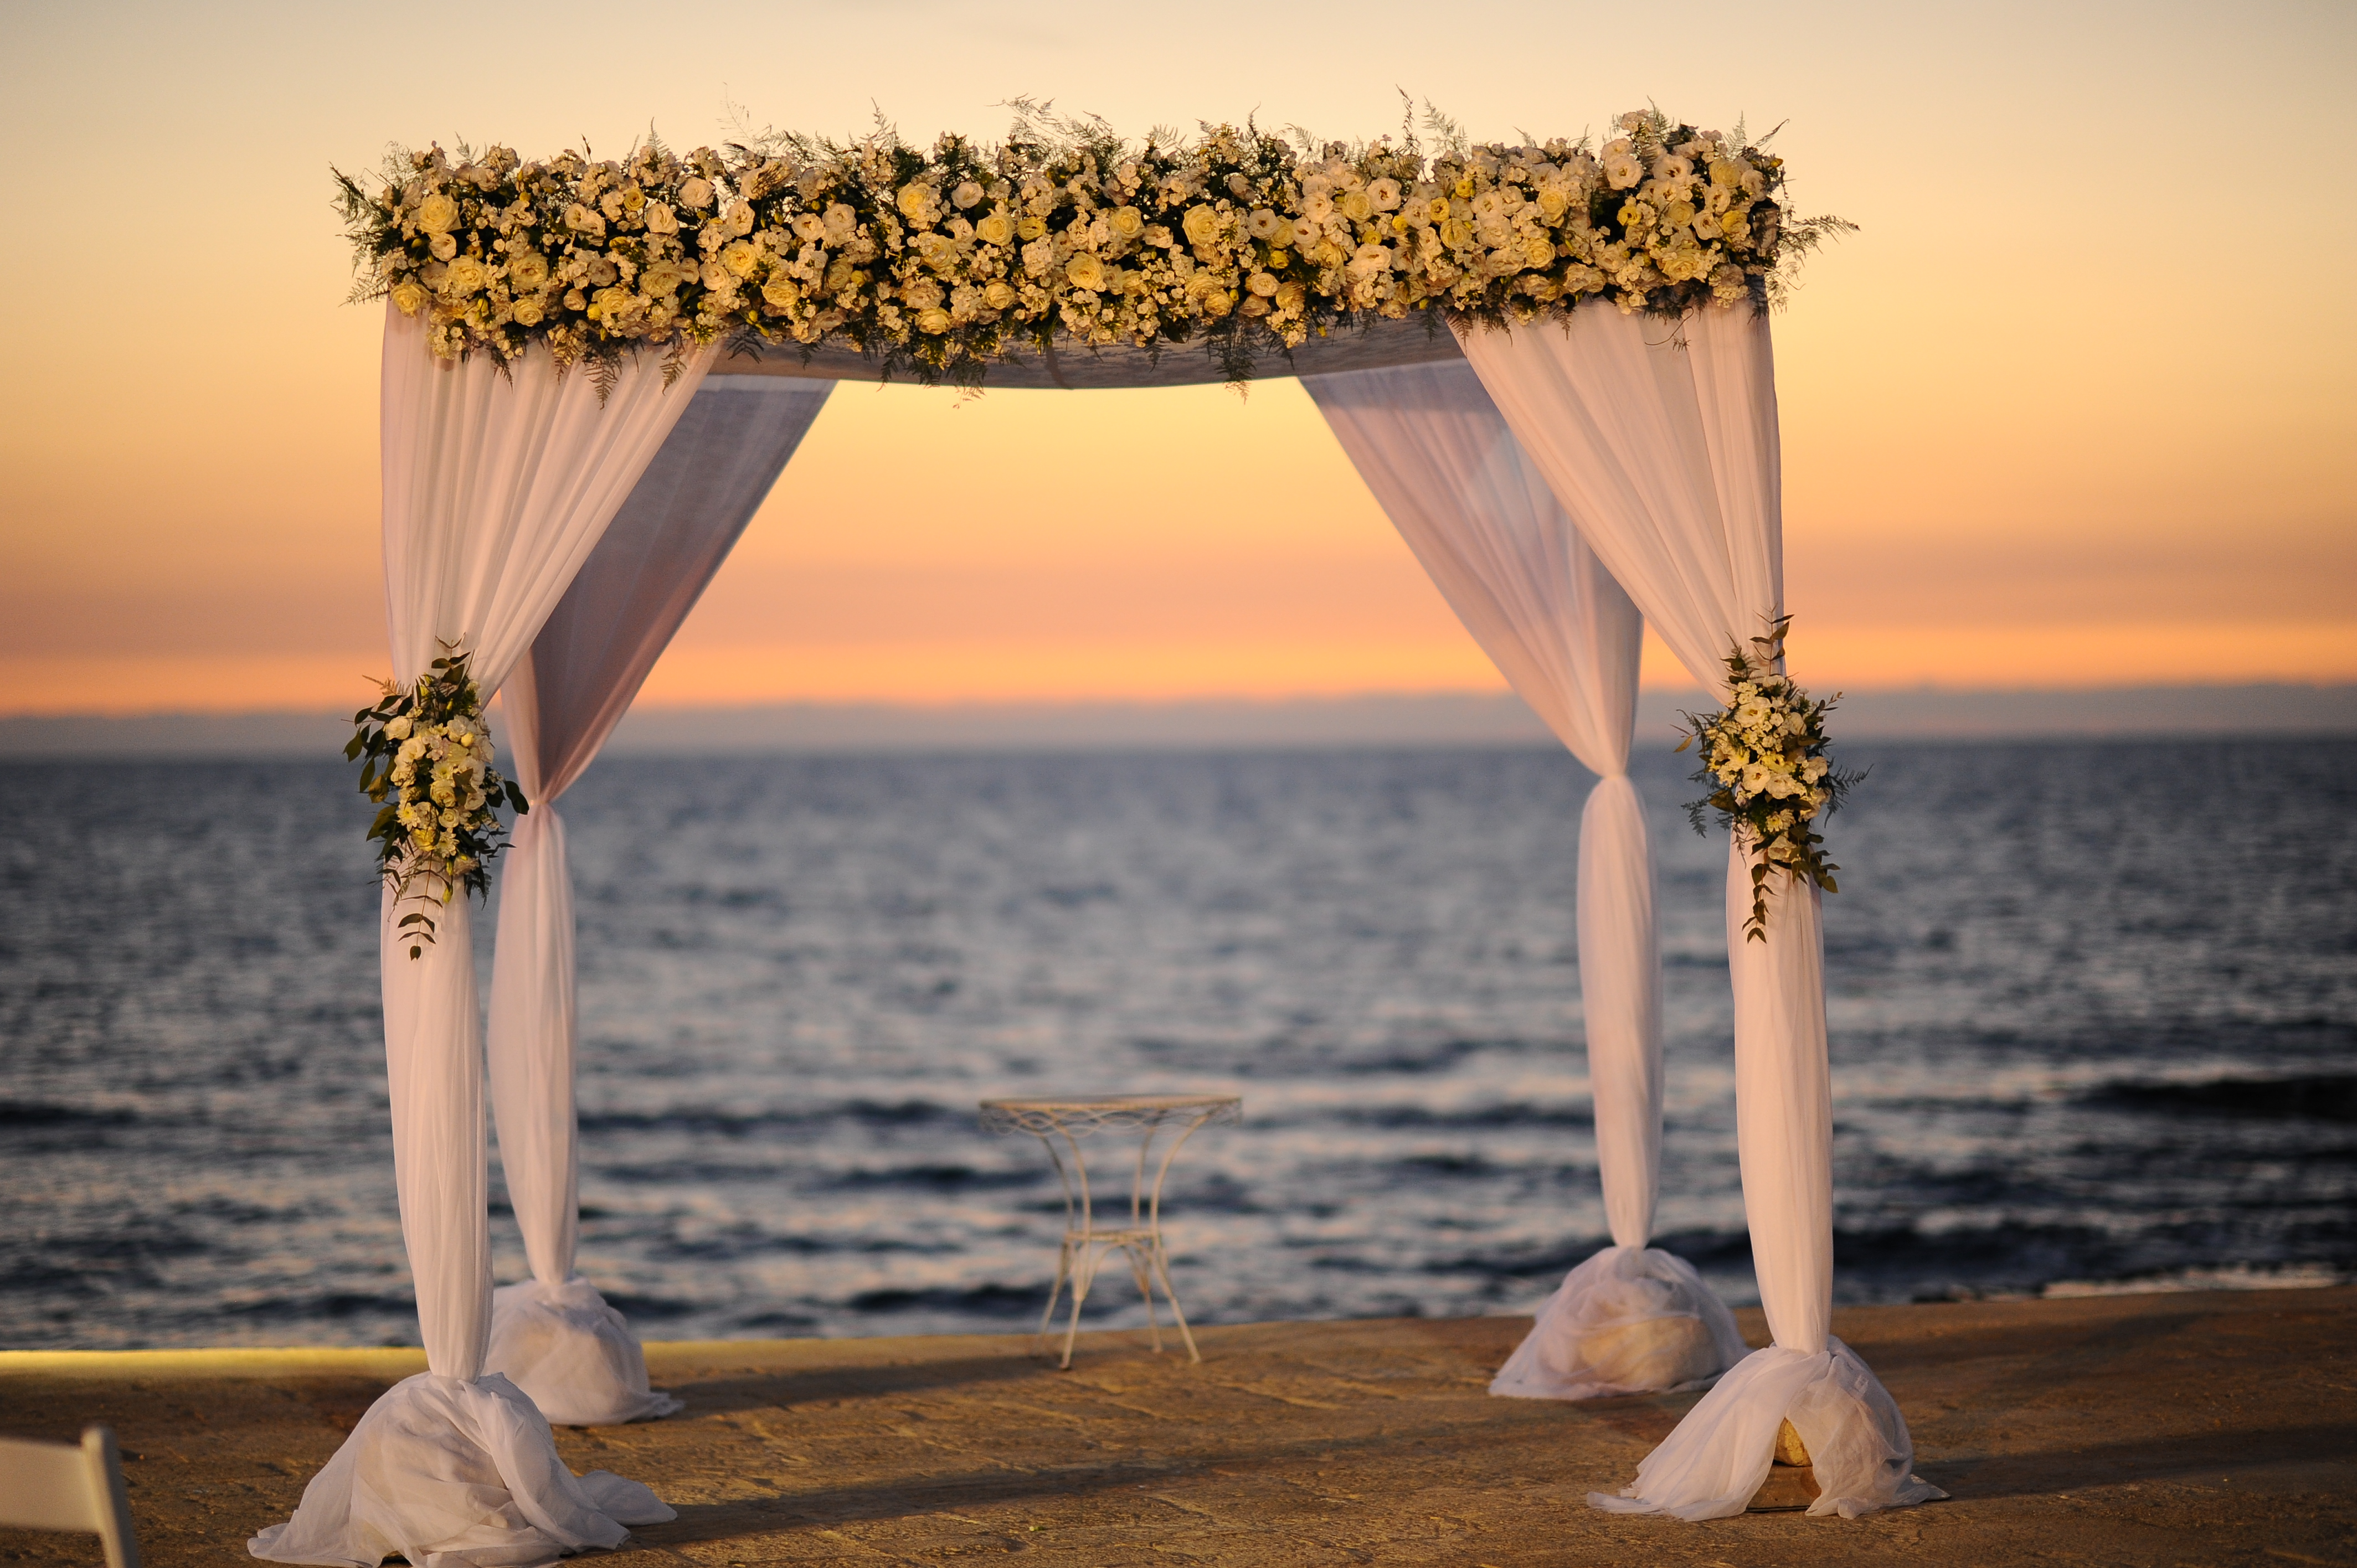 a flowery wedding canopy at sunset by the beach